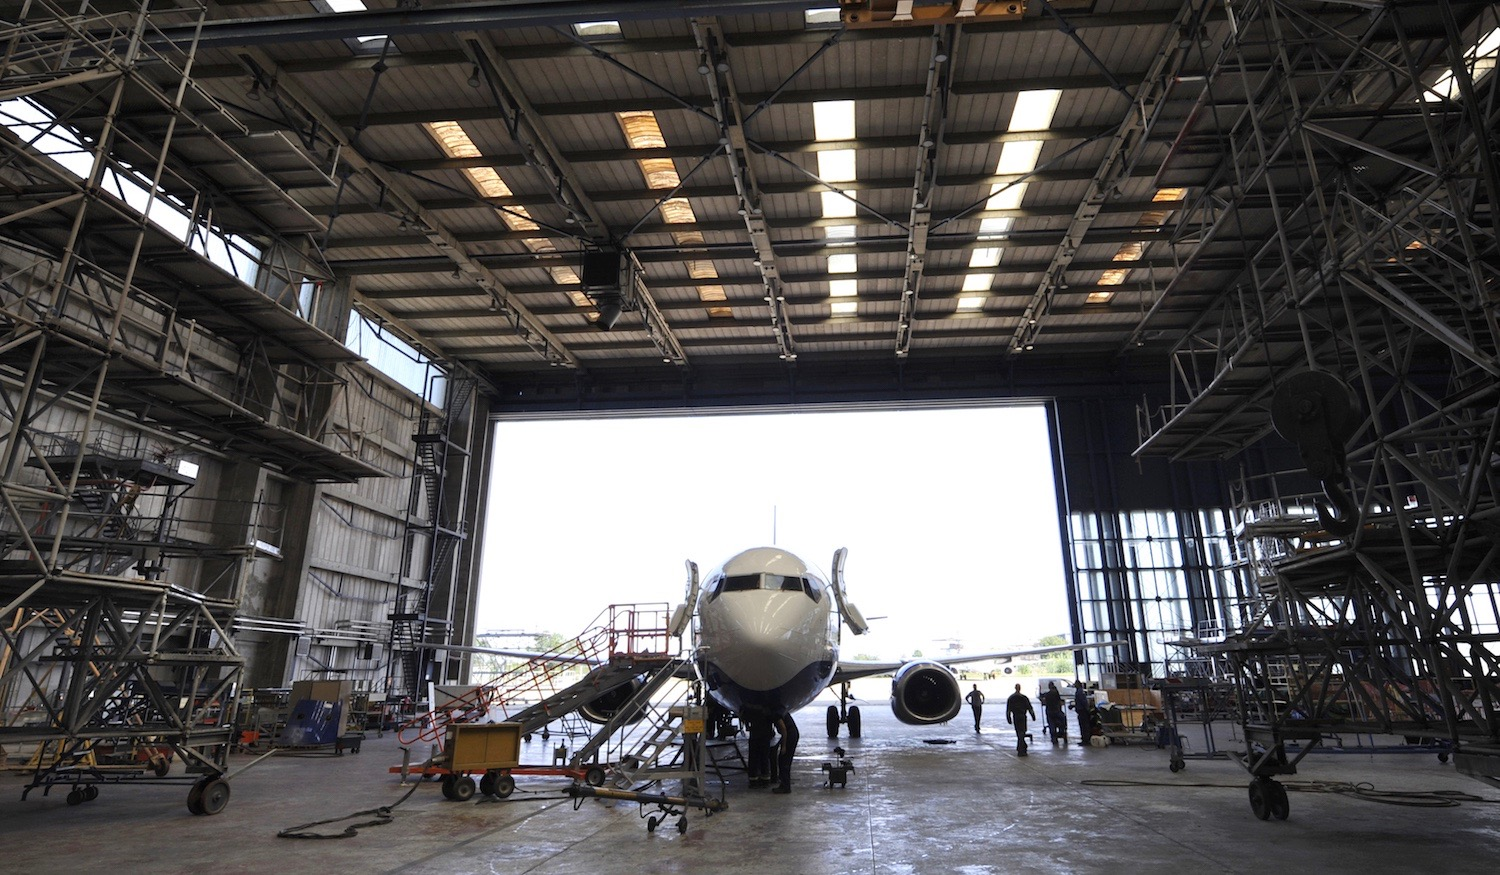 aircraft maintenance in hanger